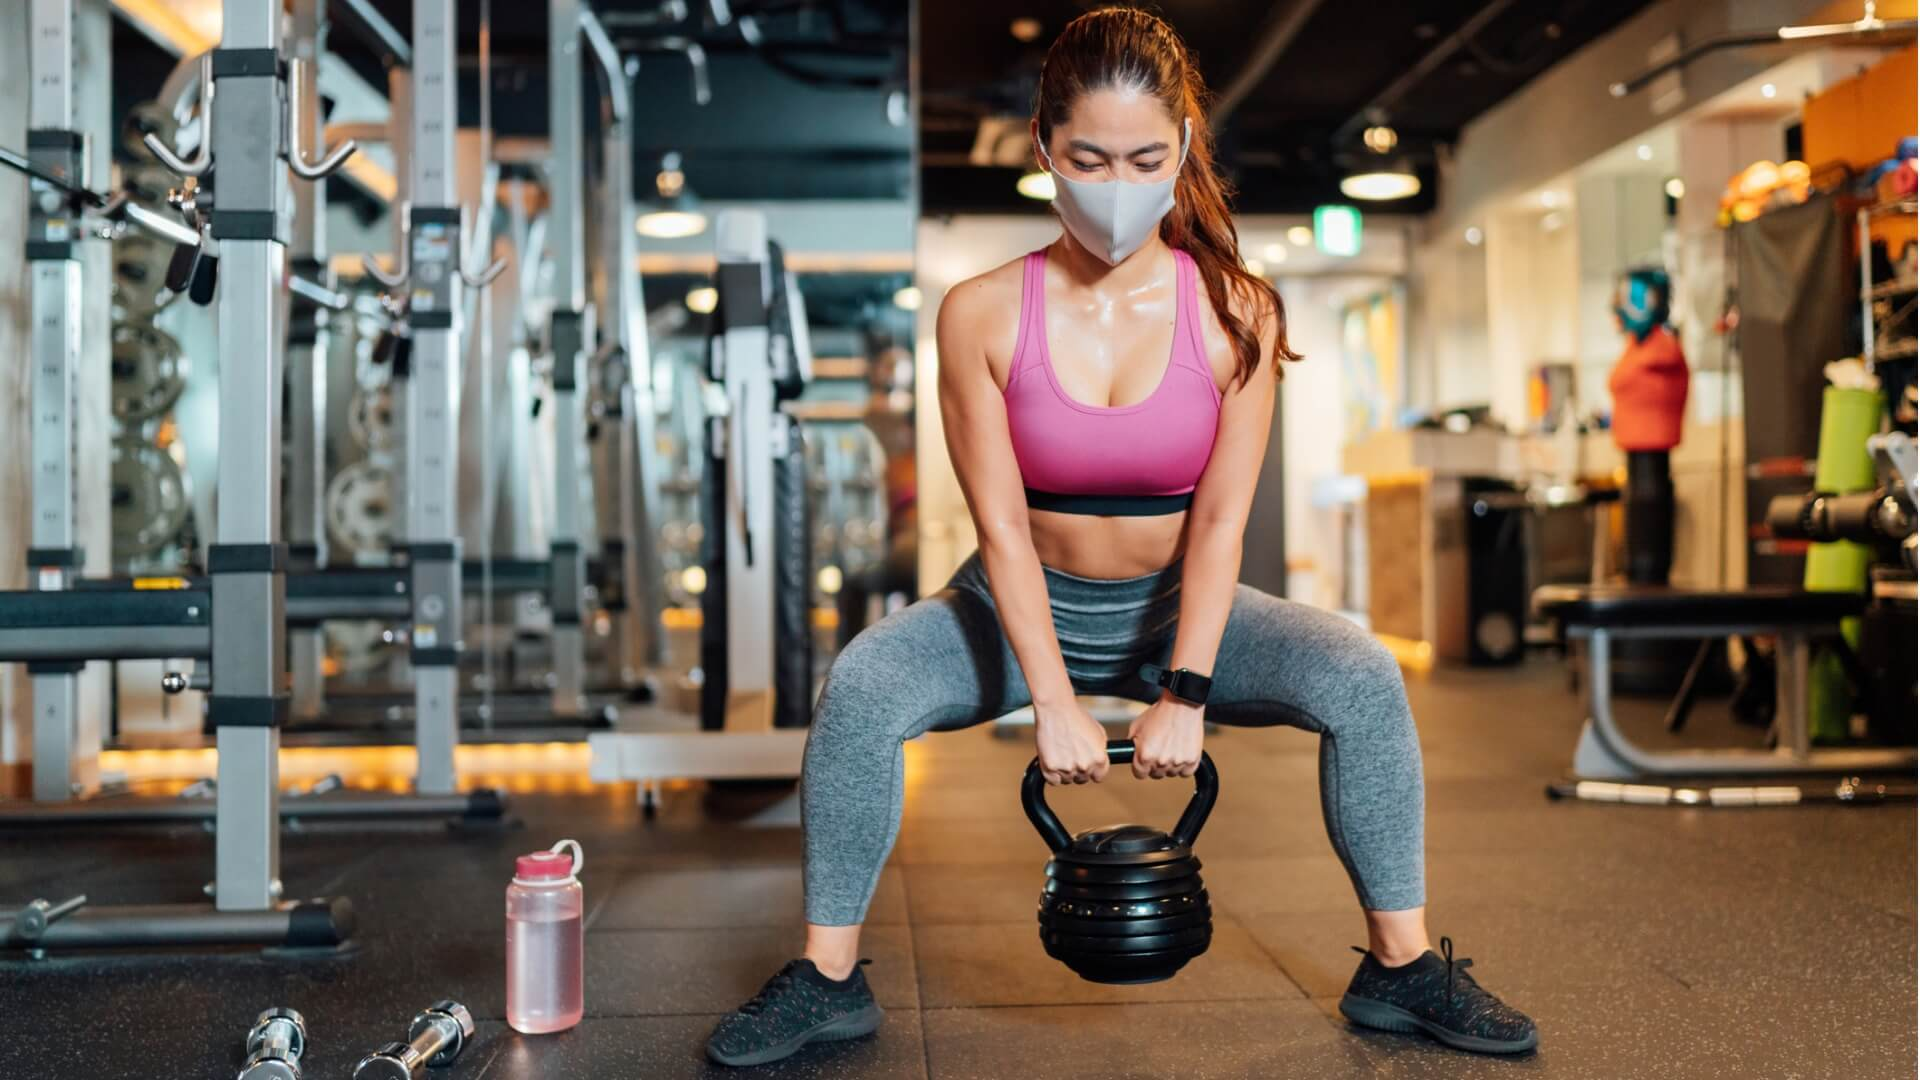 5 tips for returning to the gym after a long break